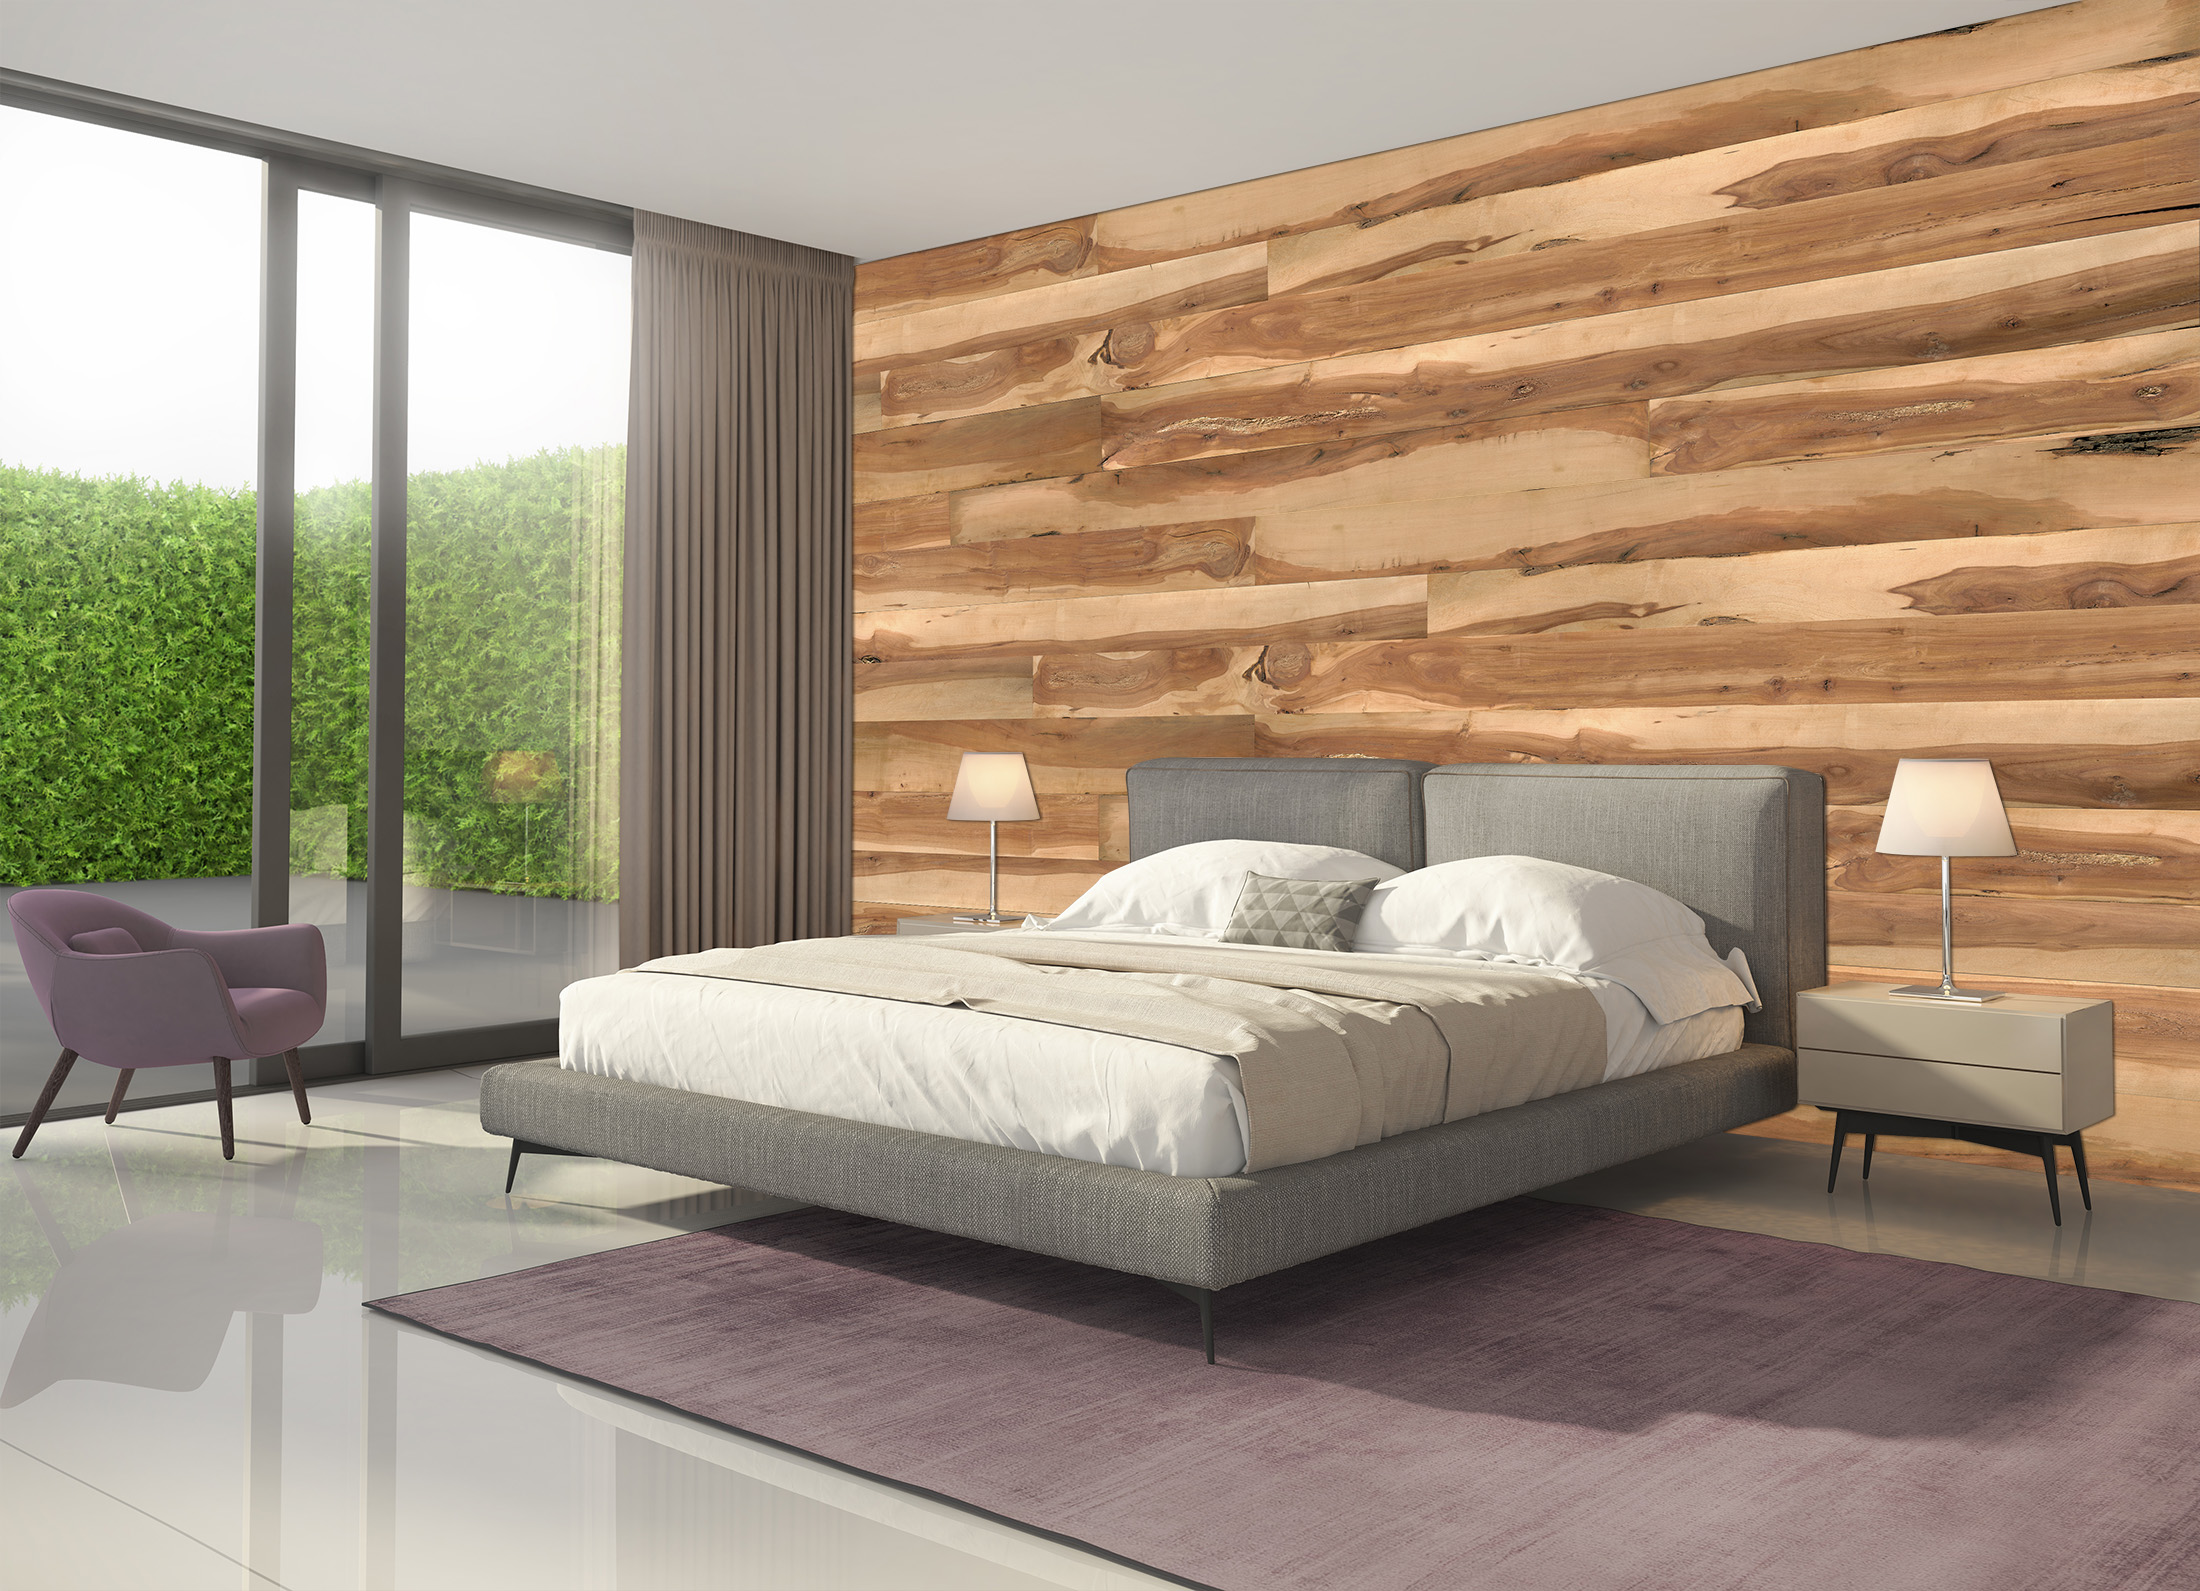 wandverkleidung aus holz versch nere dein zuhause mit. Black Bedroom Furniture Sets. Home Design Ideas